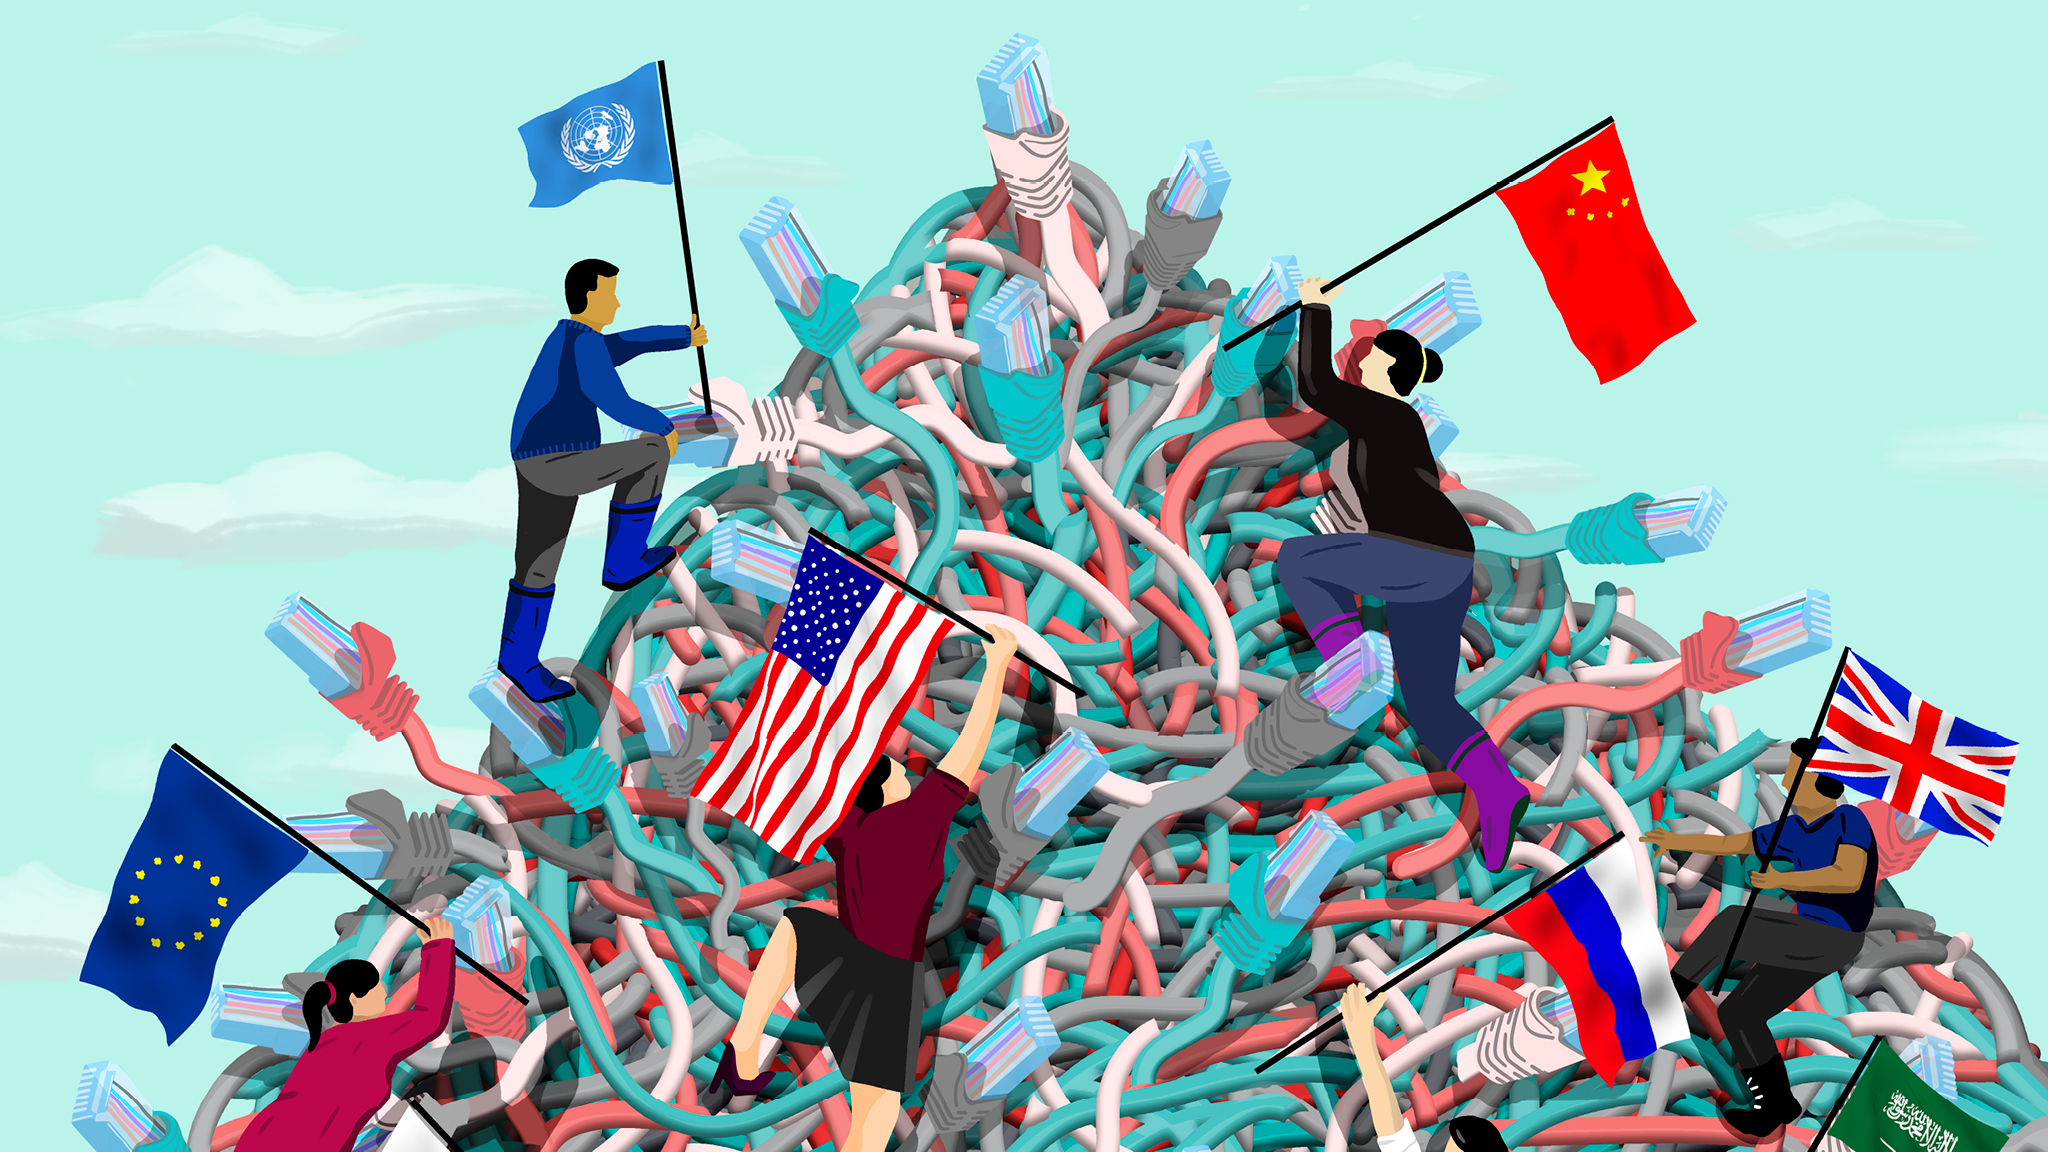 Inside China's controversial mission to reinvent the internet